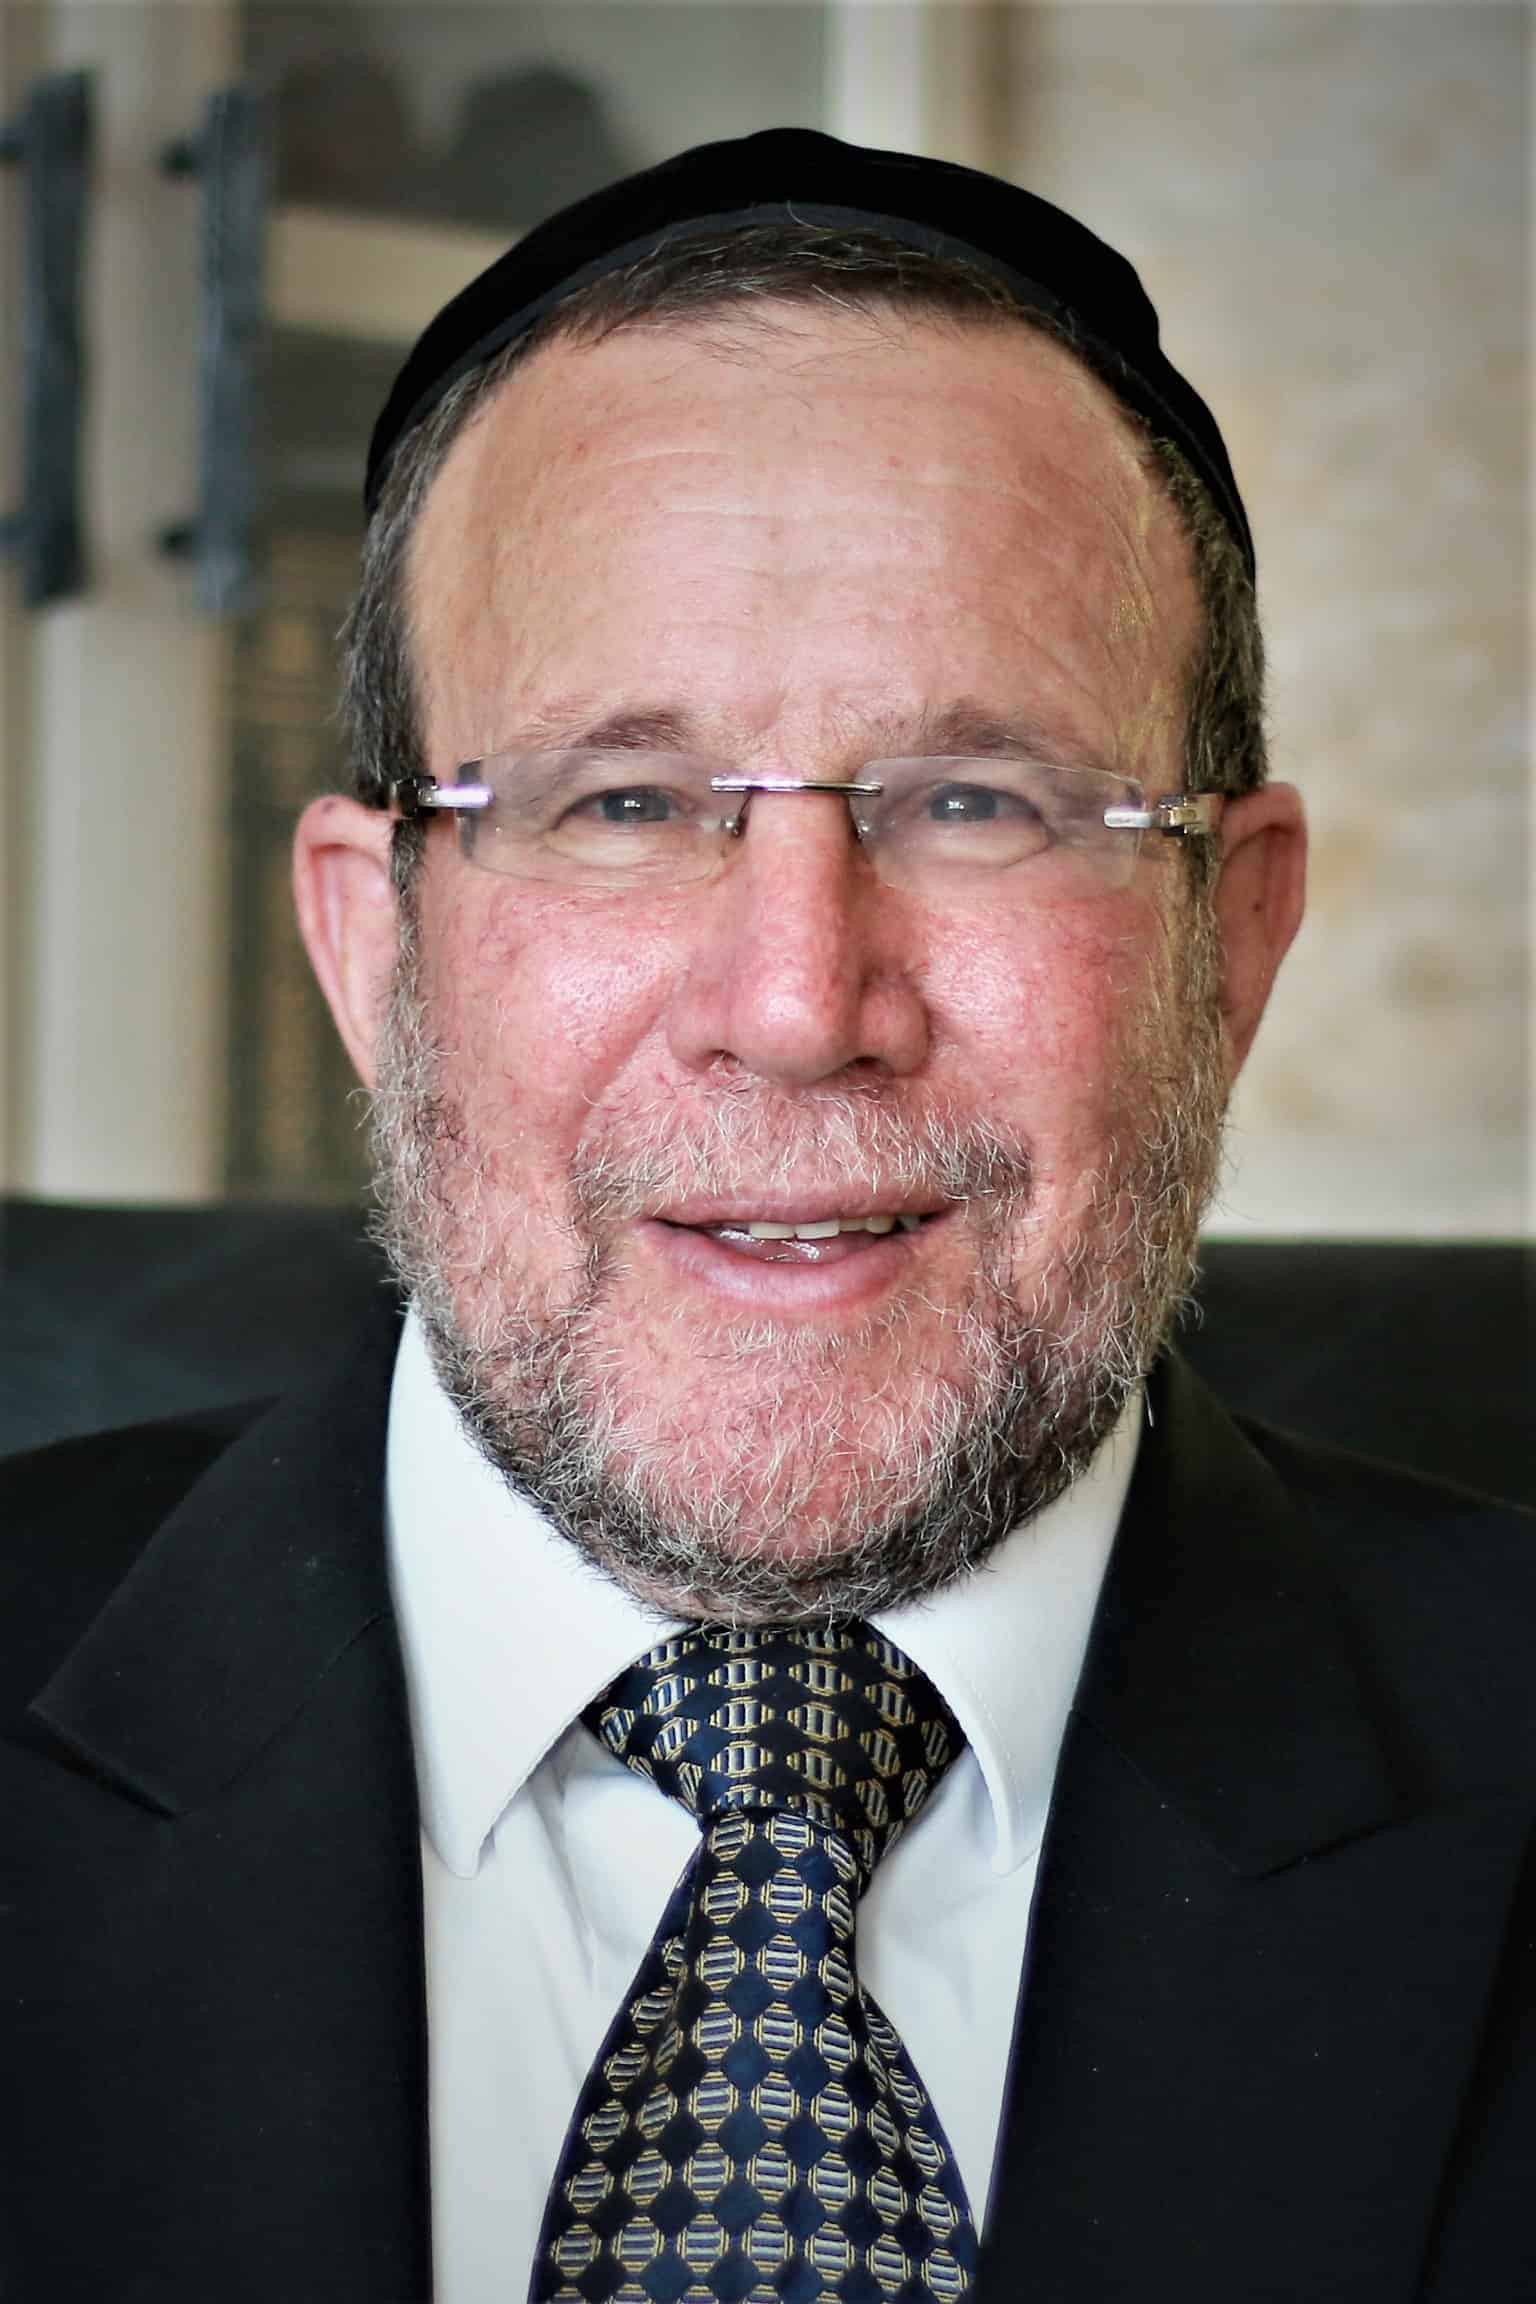 Rabbi Daniel Channen